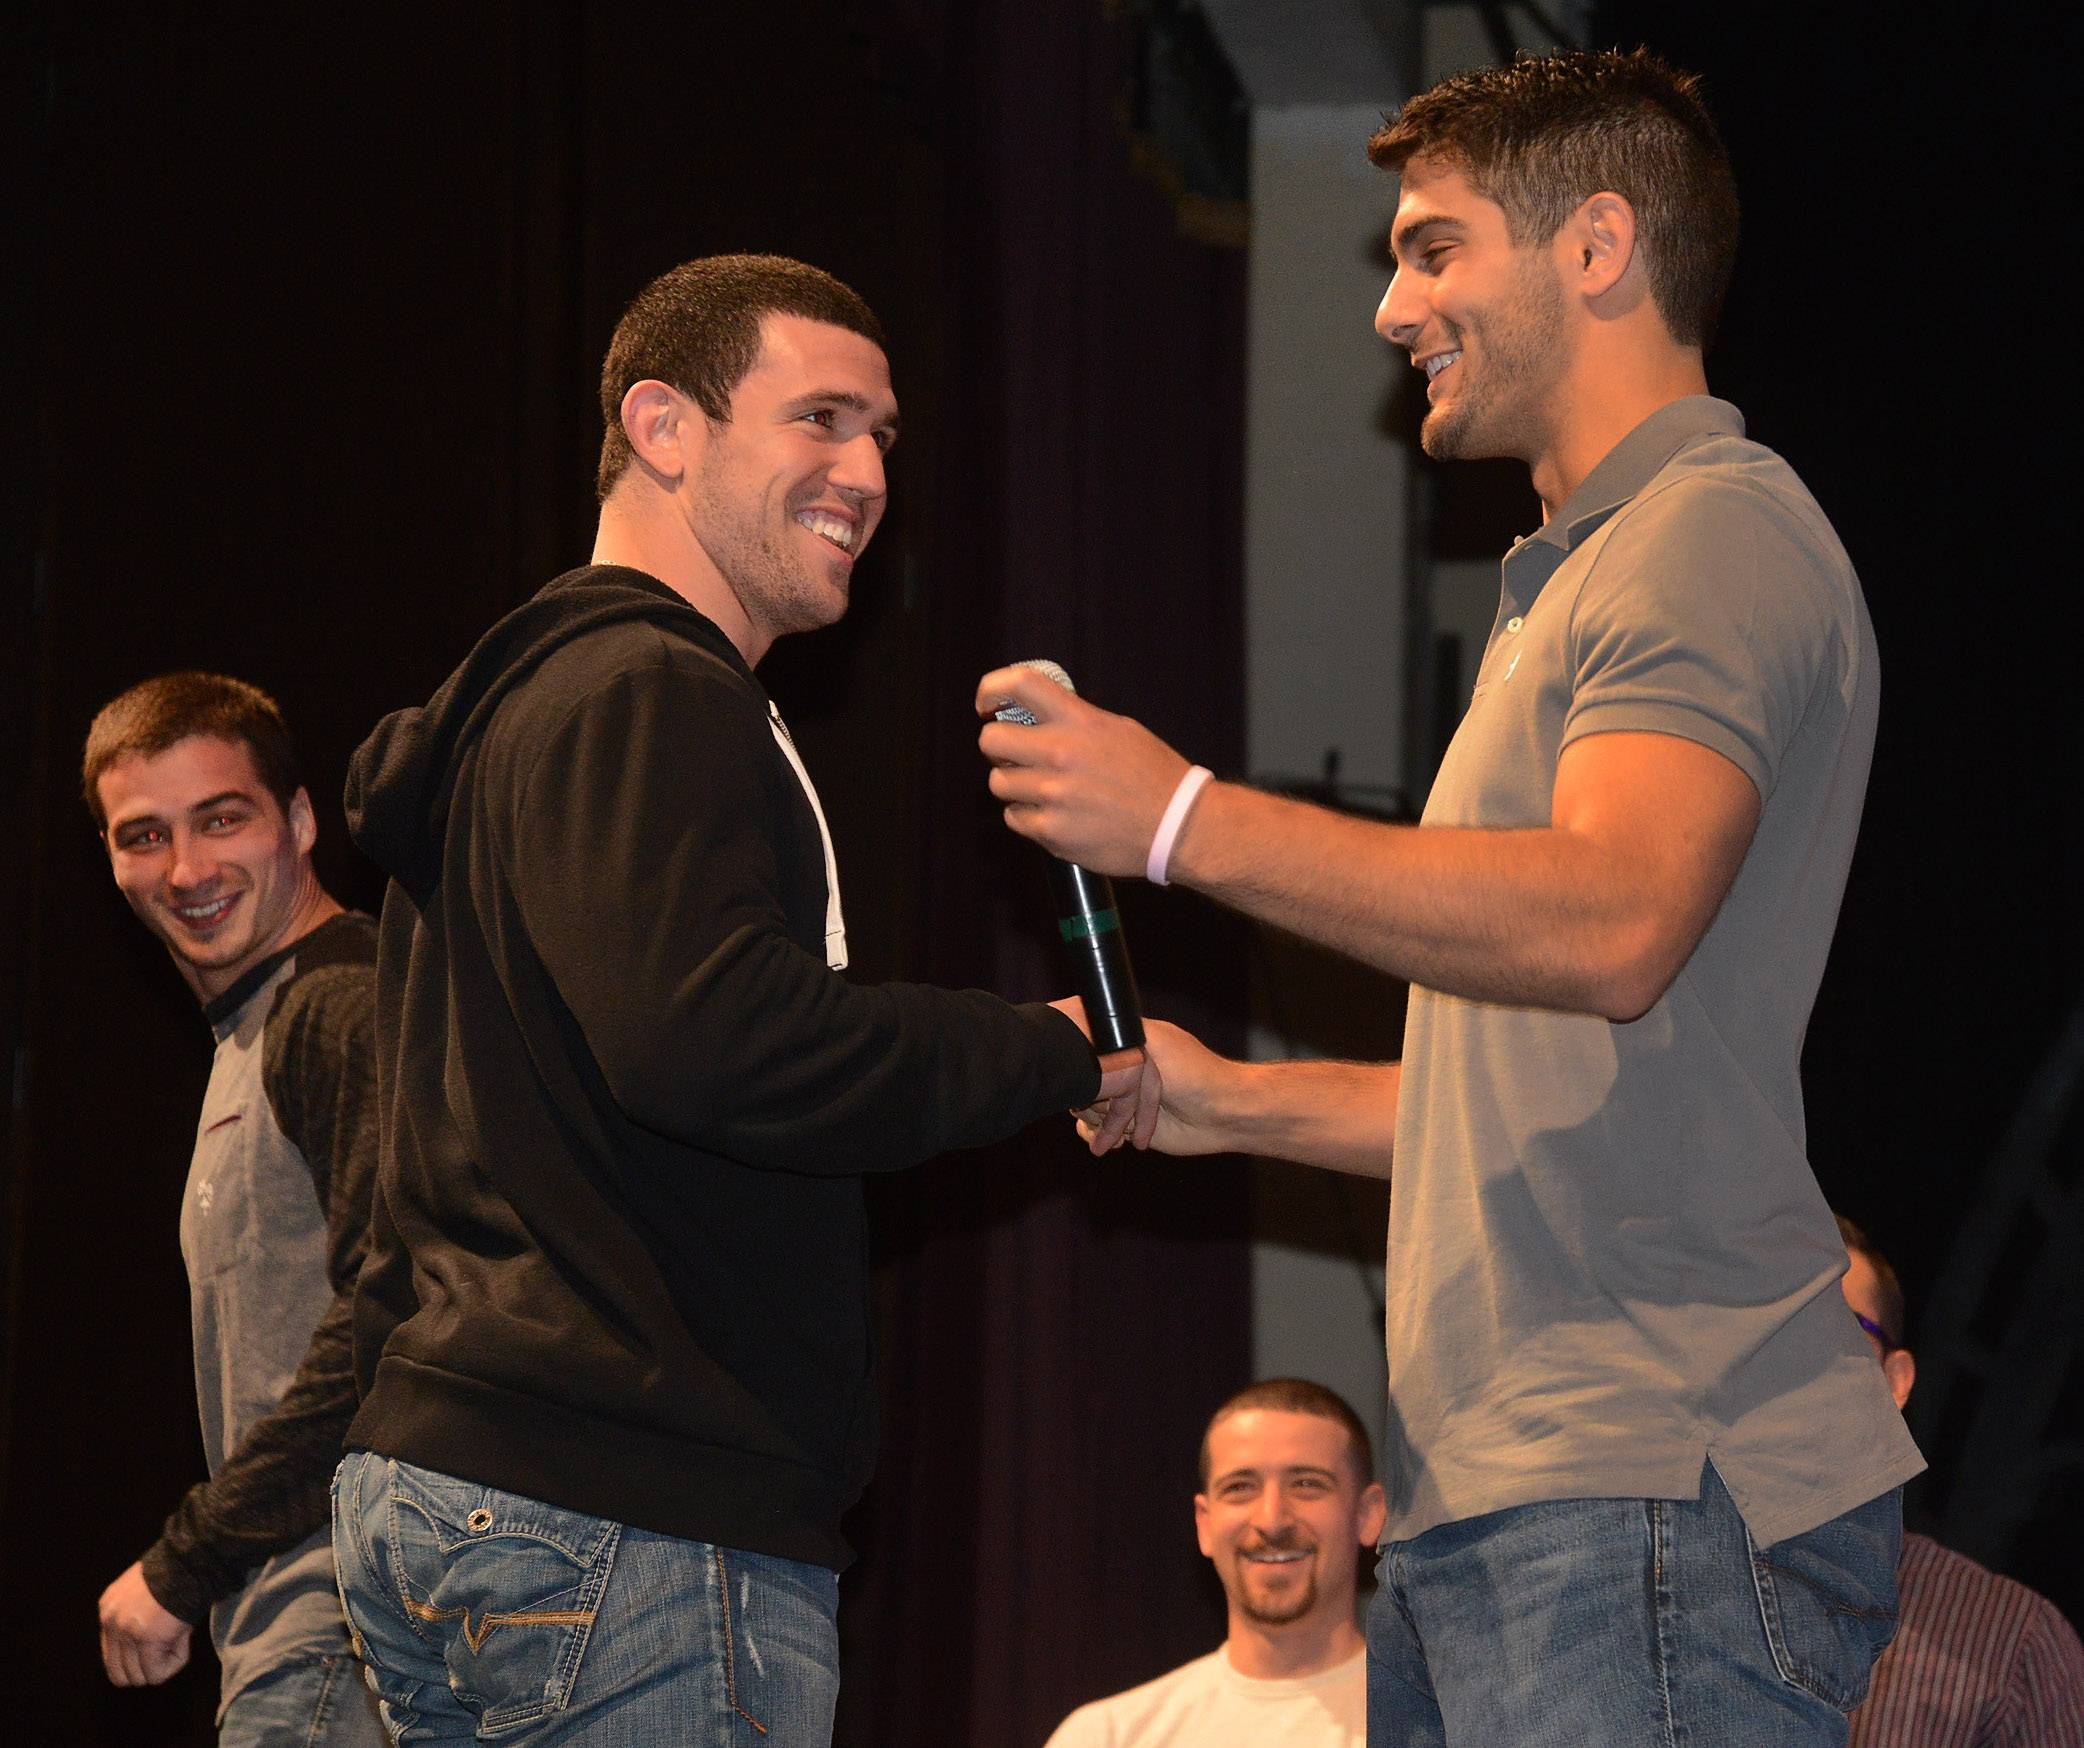 NFL quarterback prospect Jimmy Garoppolo returned to Rolling Meadows High School on Thursday to reunite with former coaches and players and to talk to students. Here he shakes hands with former teammate Tony Taibi.